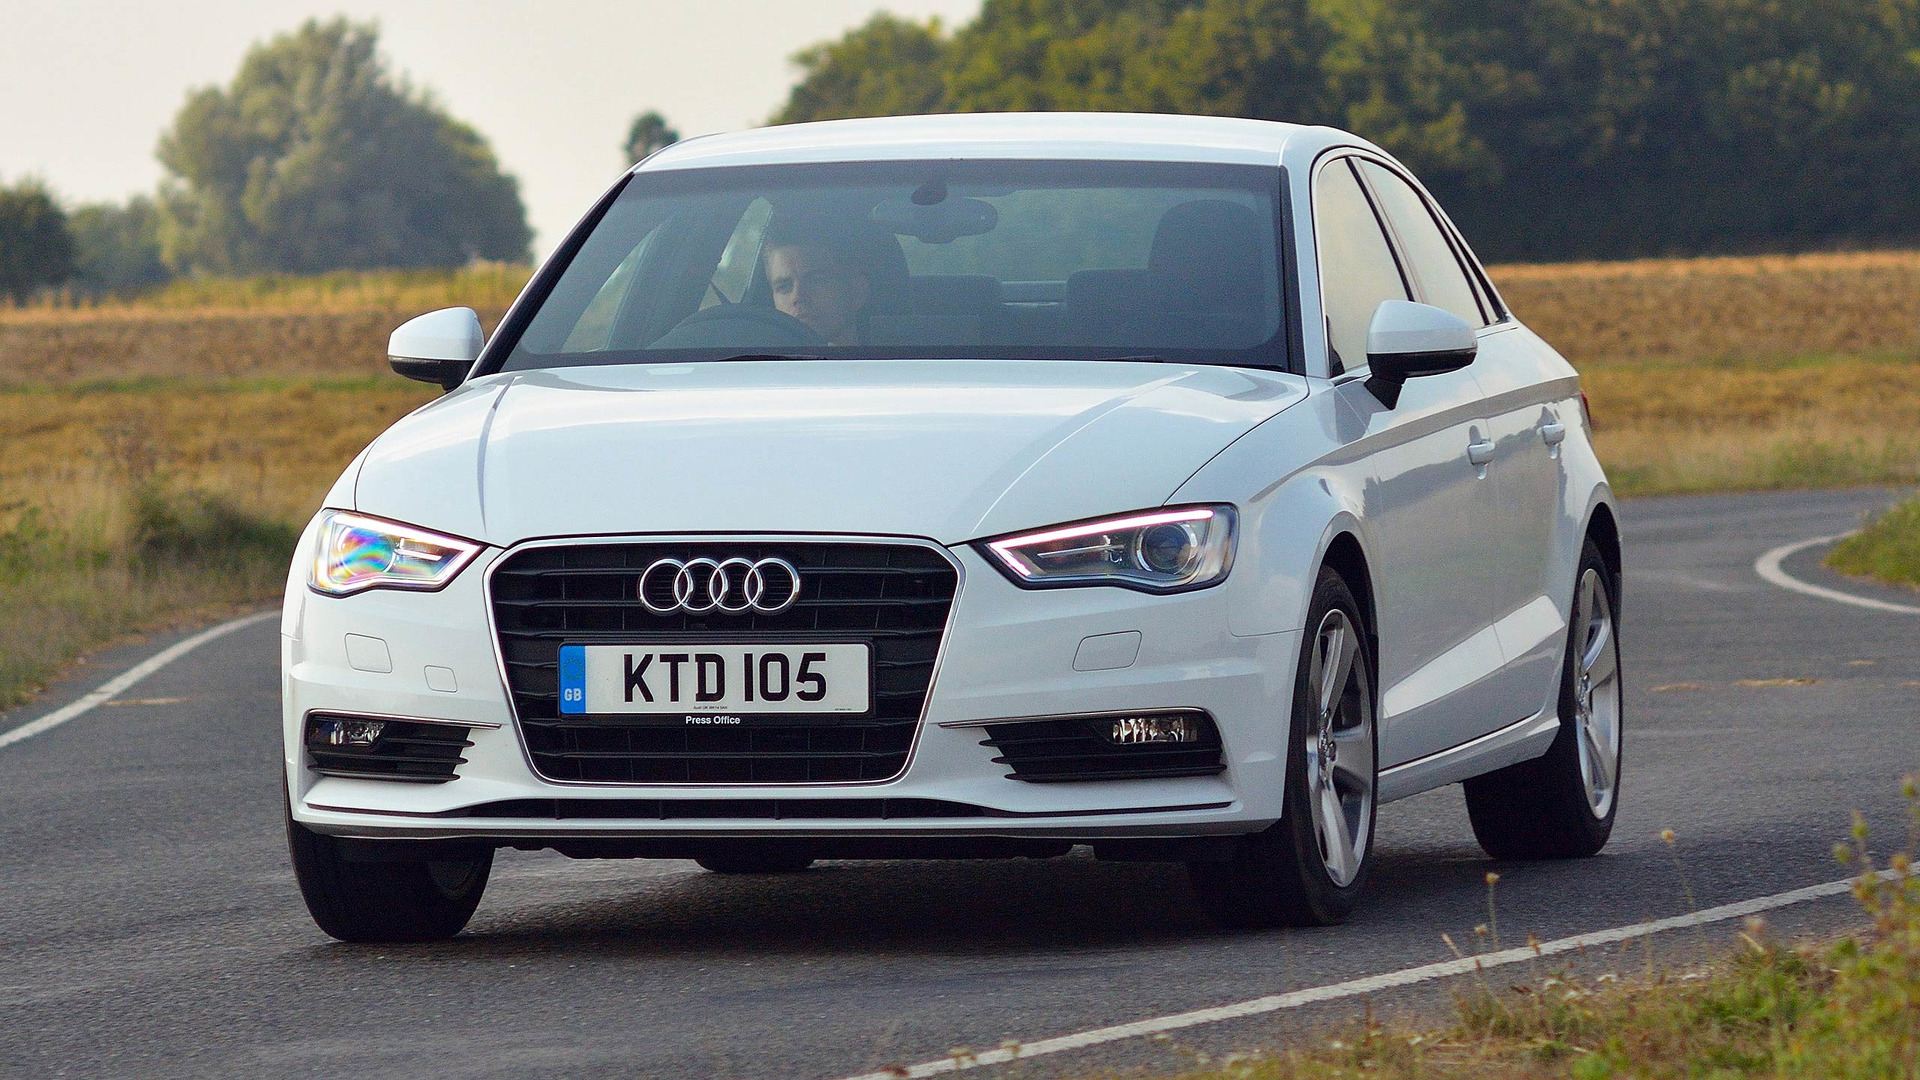 kit revealed tech range car magazine and engines audi facelifted new by